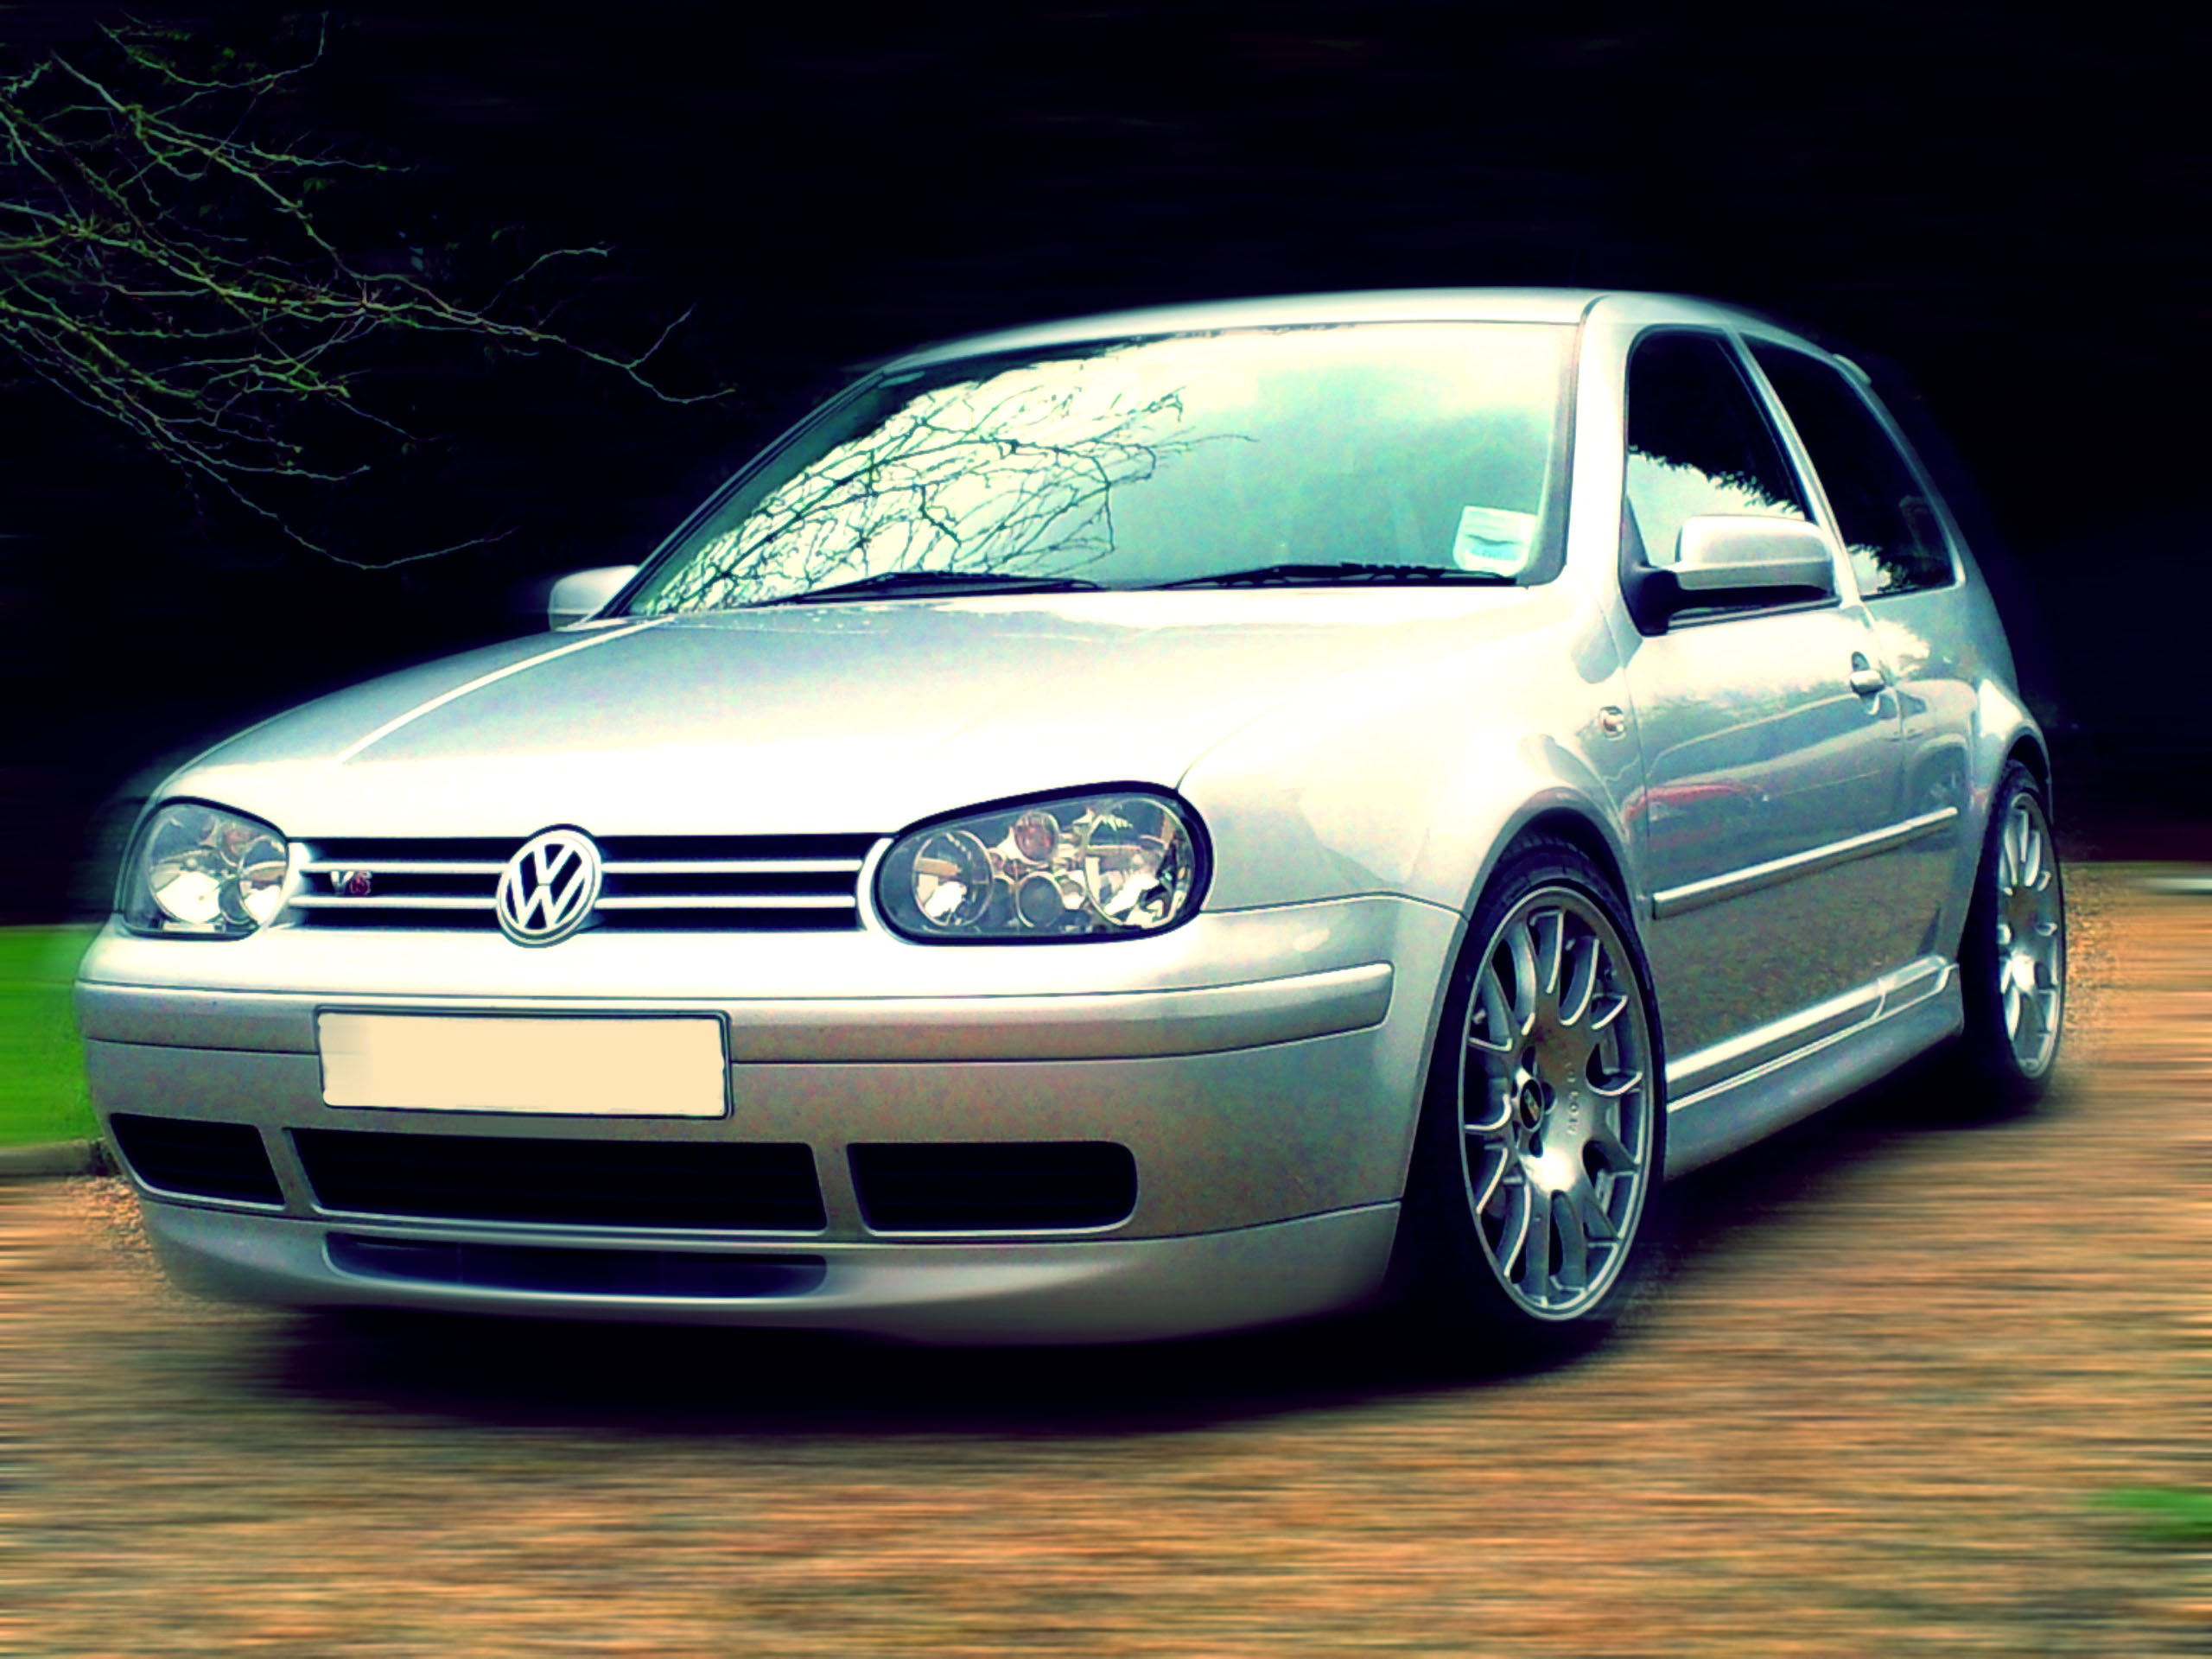 volkswagen golf v6 4motion photos and comments. Black Bedroom Furniture Sets. Home Design Ideas